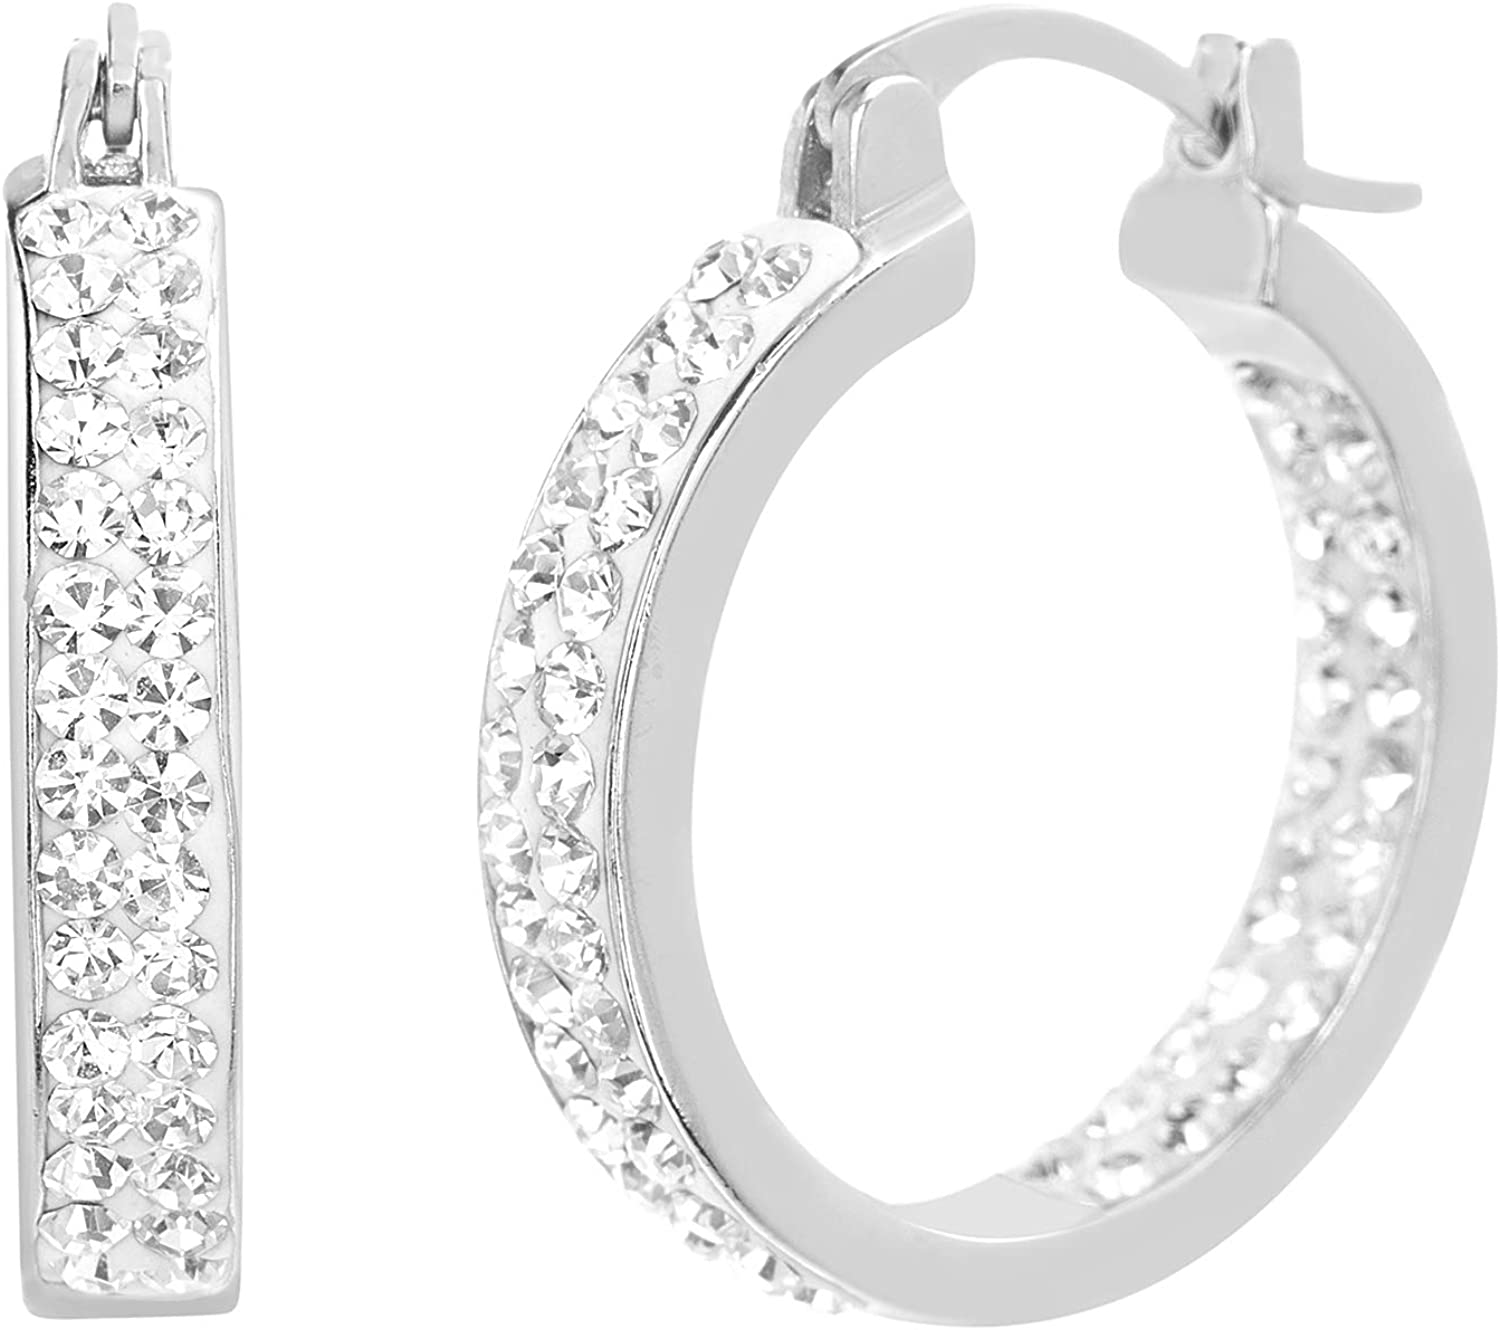 Devin Rose Sterling Silver Sparkly Hoop Earrings for Women made with Swarovski Crystals Inside Outside